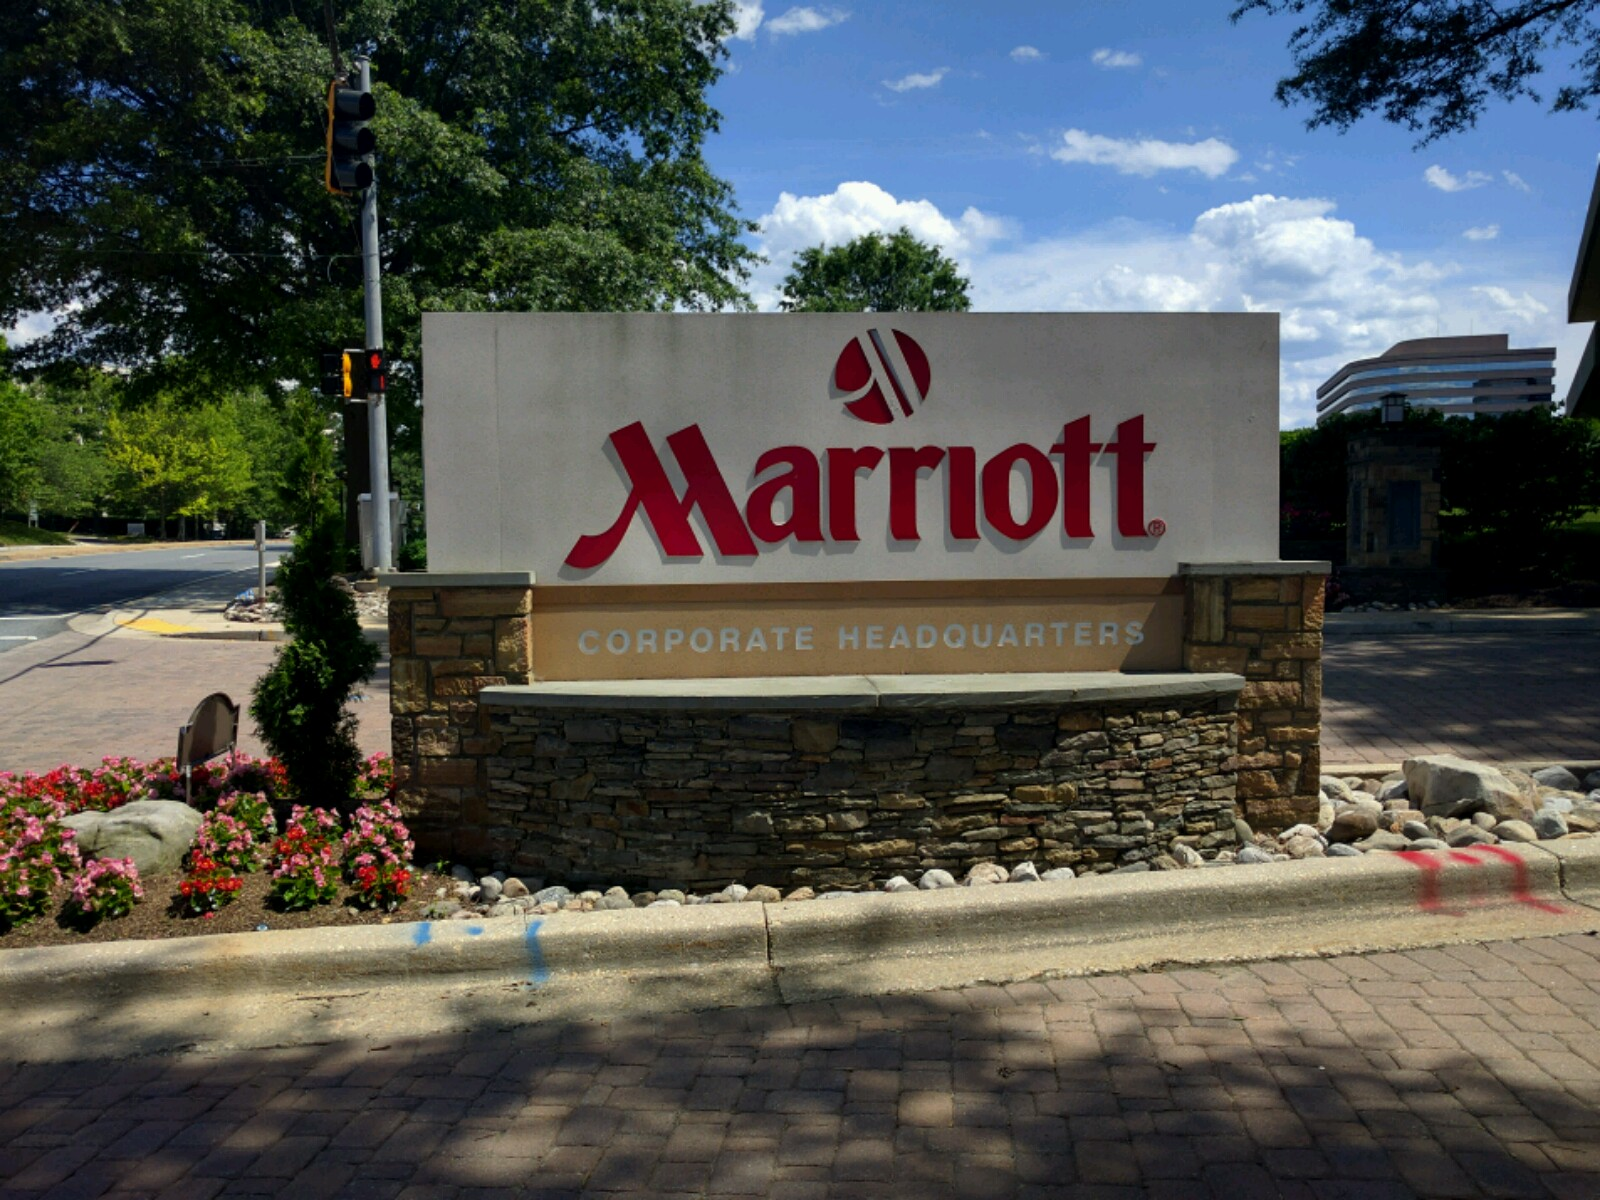 Entrance to Marriott's corporate headquarters in Bethesda, Maryland.